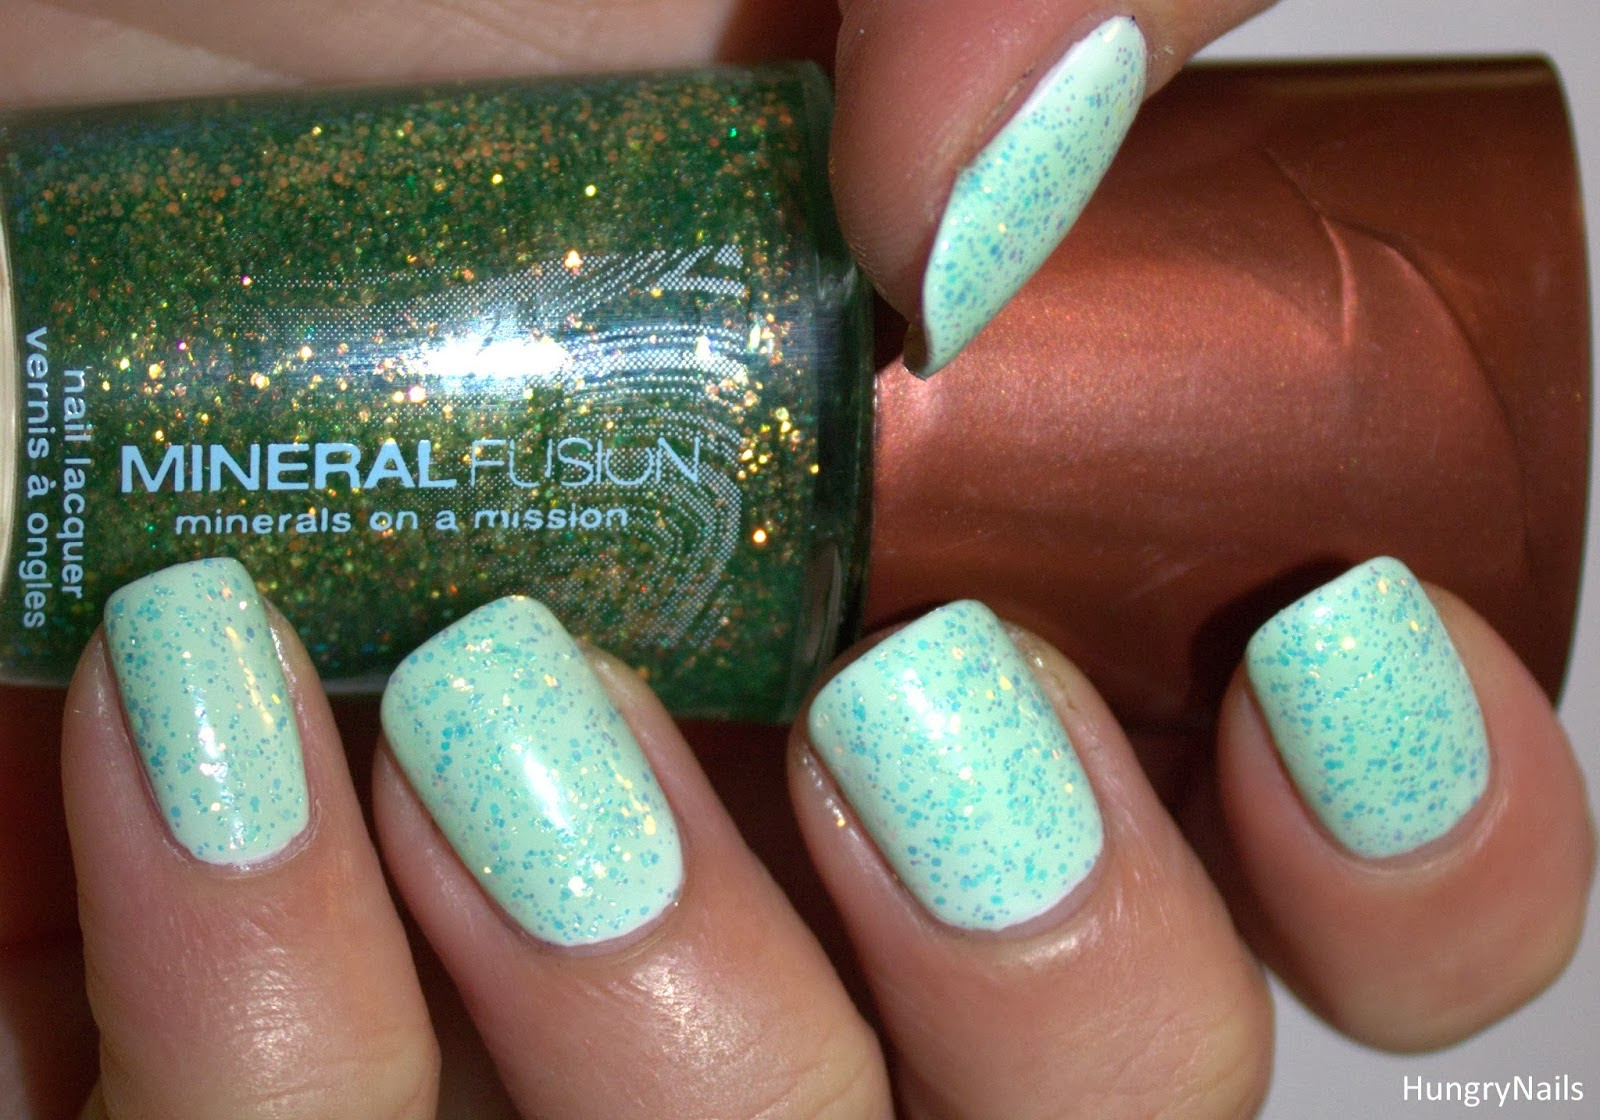 http://hungrynails.blogspot.de/2014/01/topper-time-mit-mineral-fusion.html